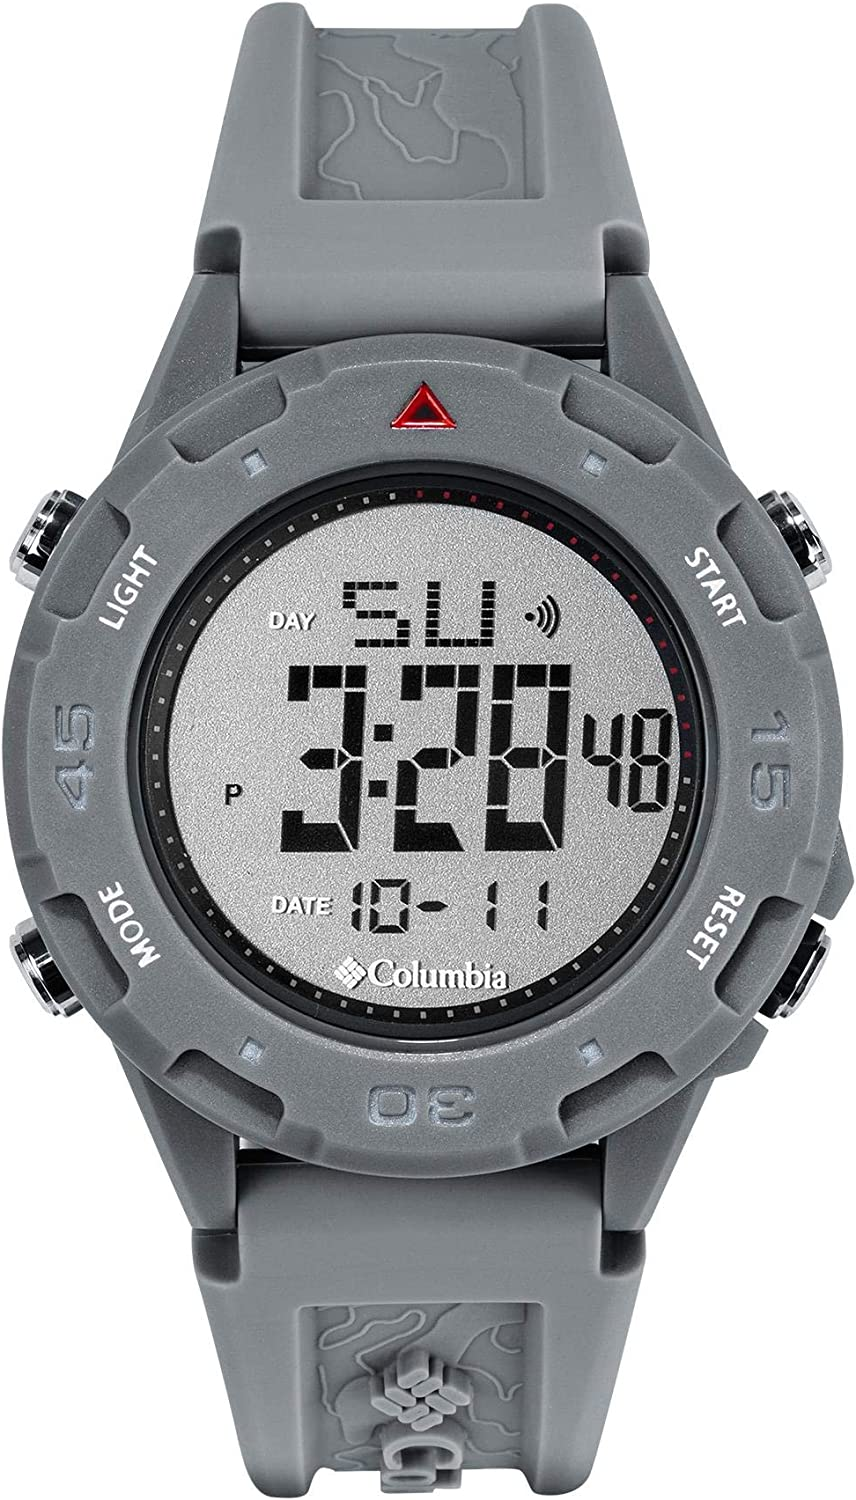 Columbia Timing The Sportsman Digital Men's Watch with Grey Dial and Grey Silicone Strap